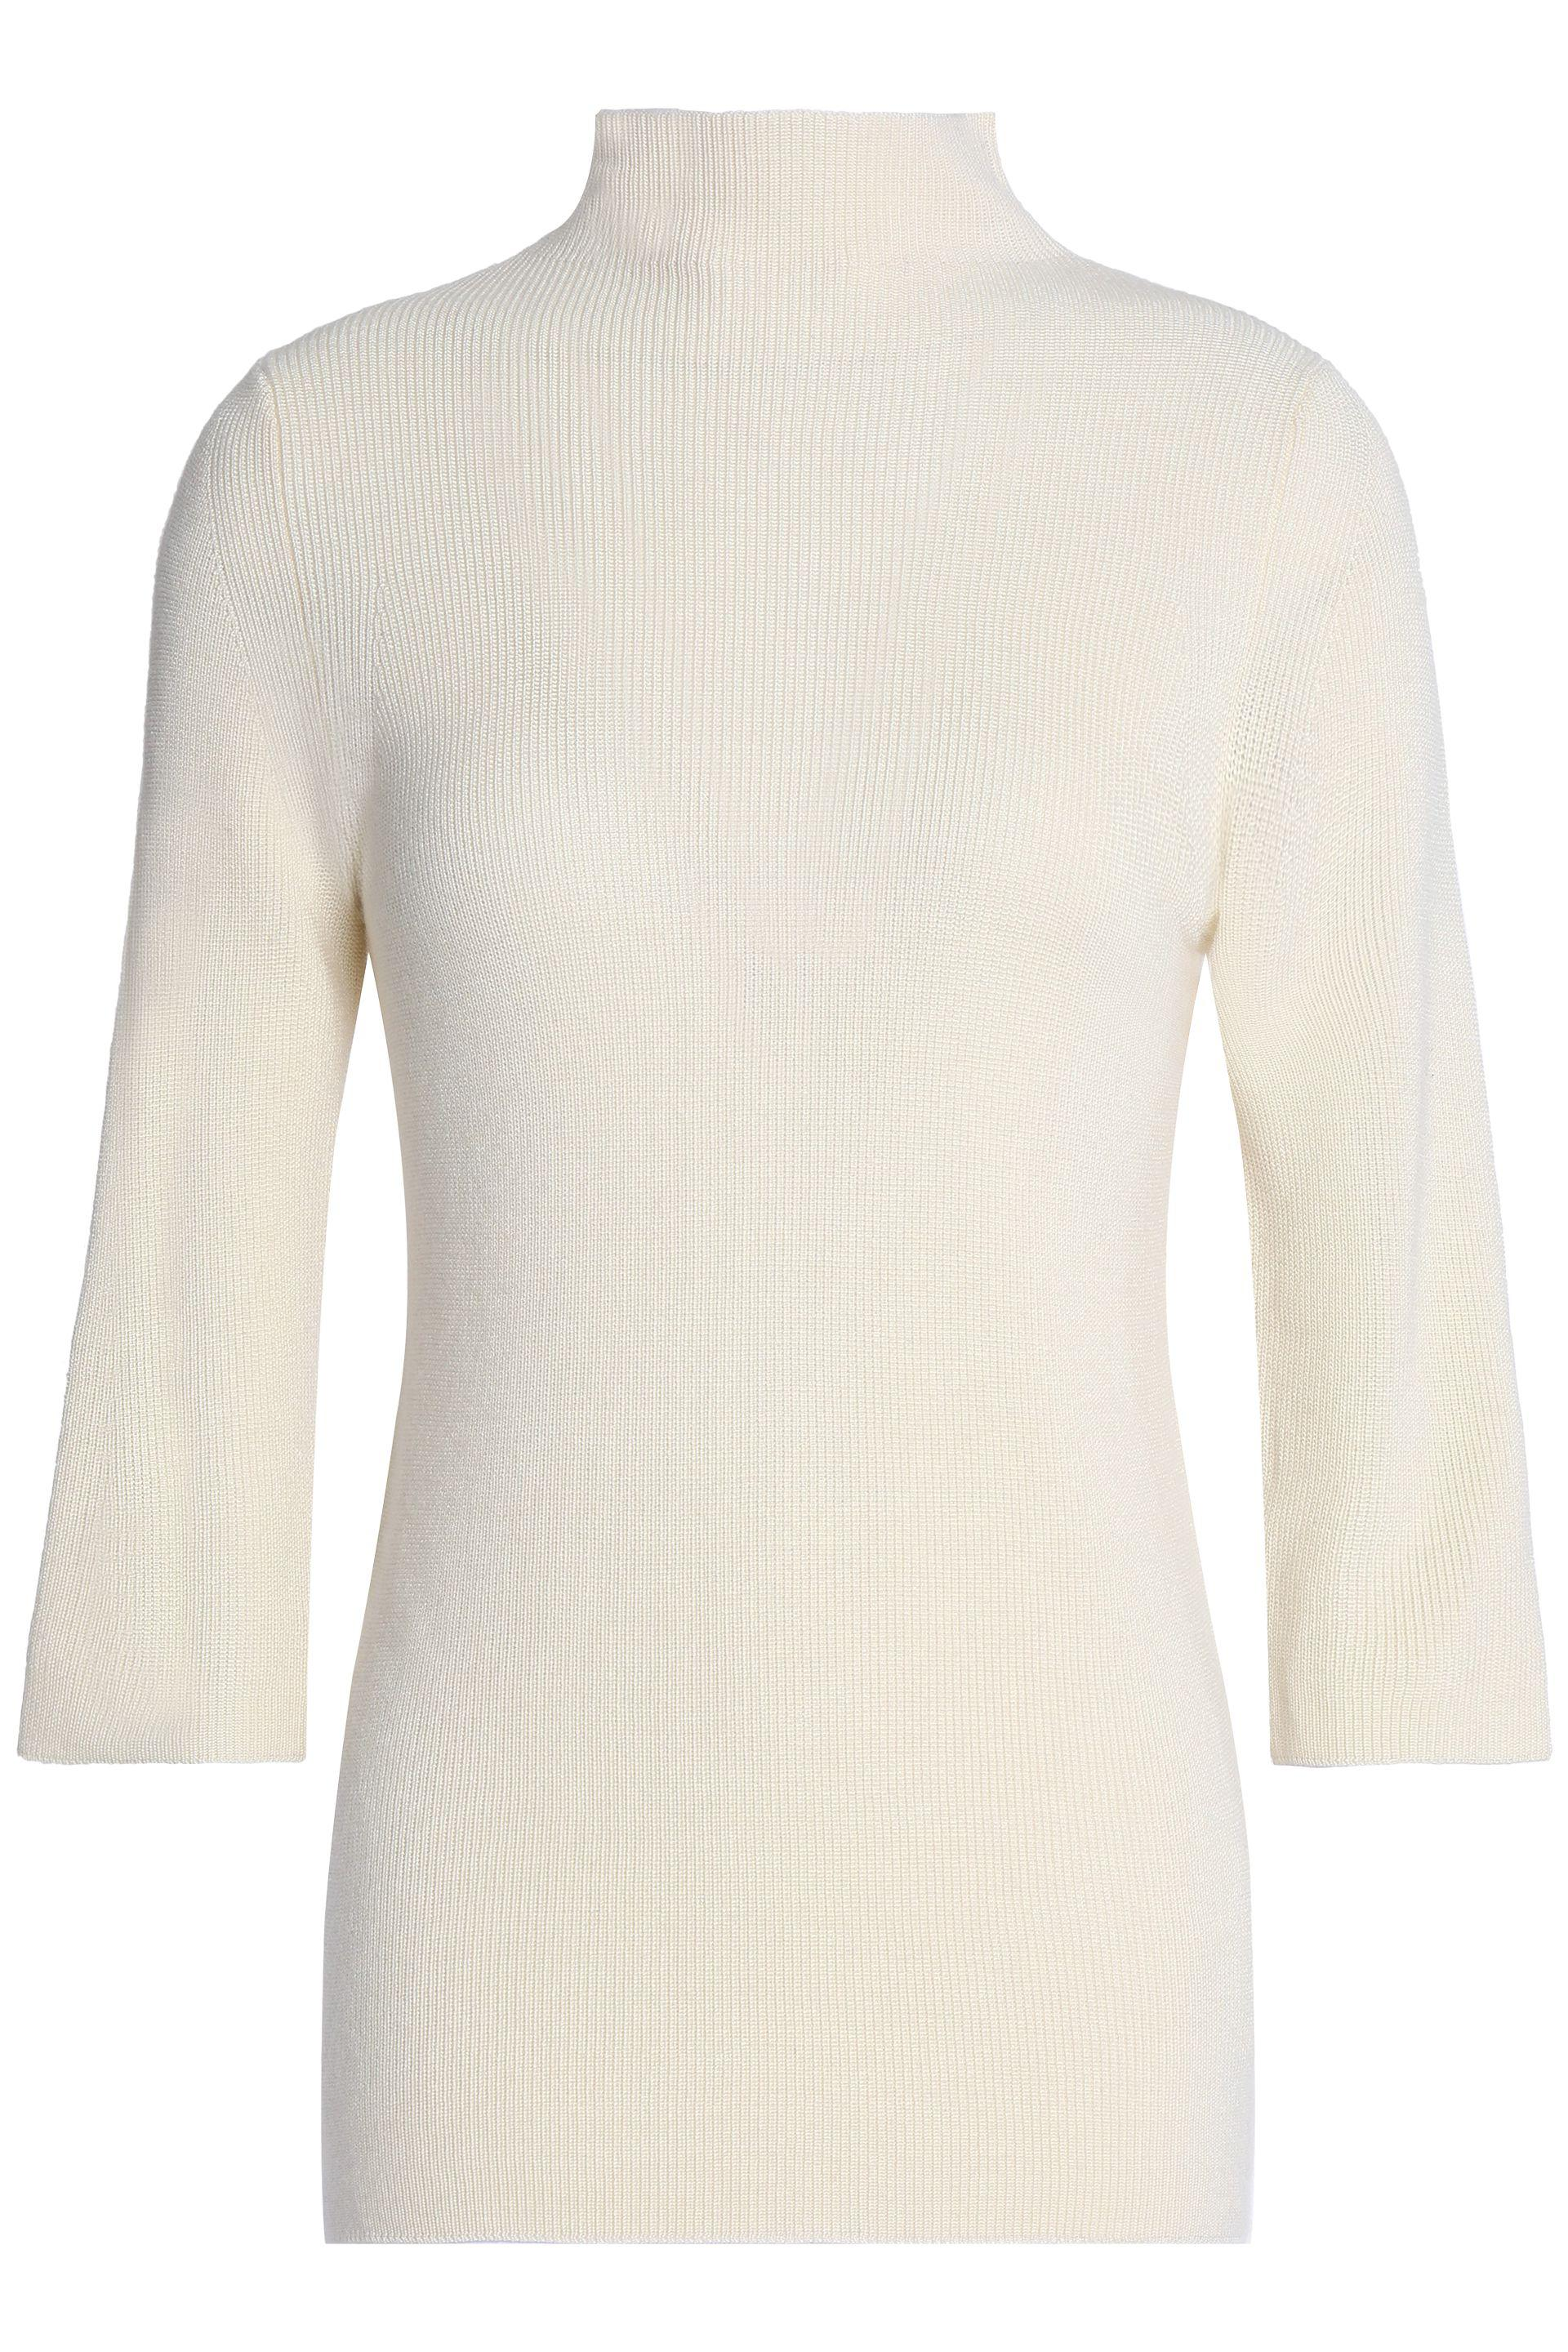 2a57321160 Pringle Of Scotland Merino Wool And Silk-blend Turtleneck Sweater in ...